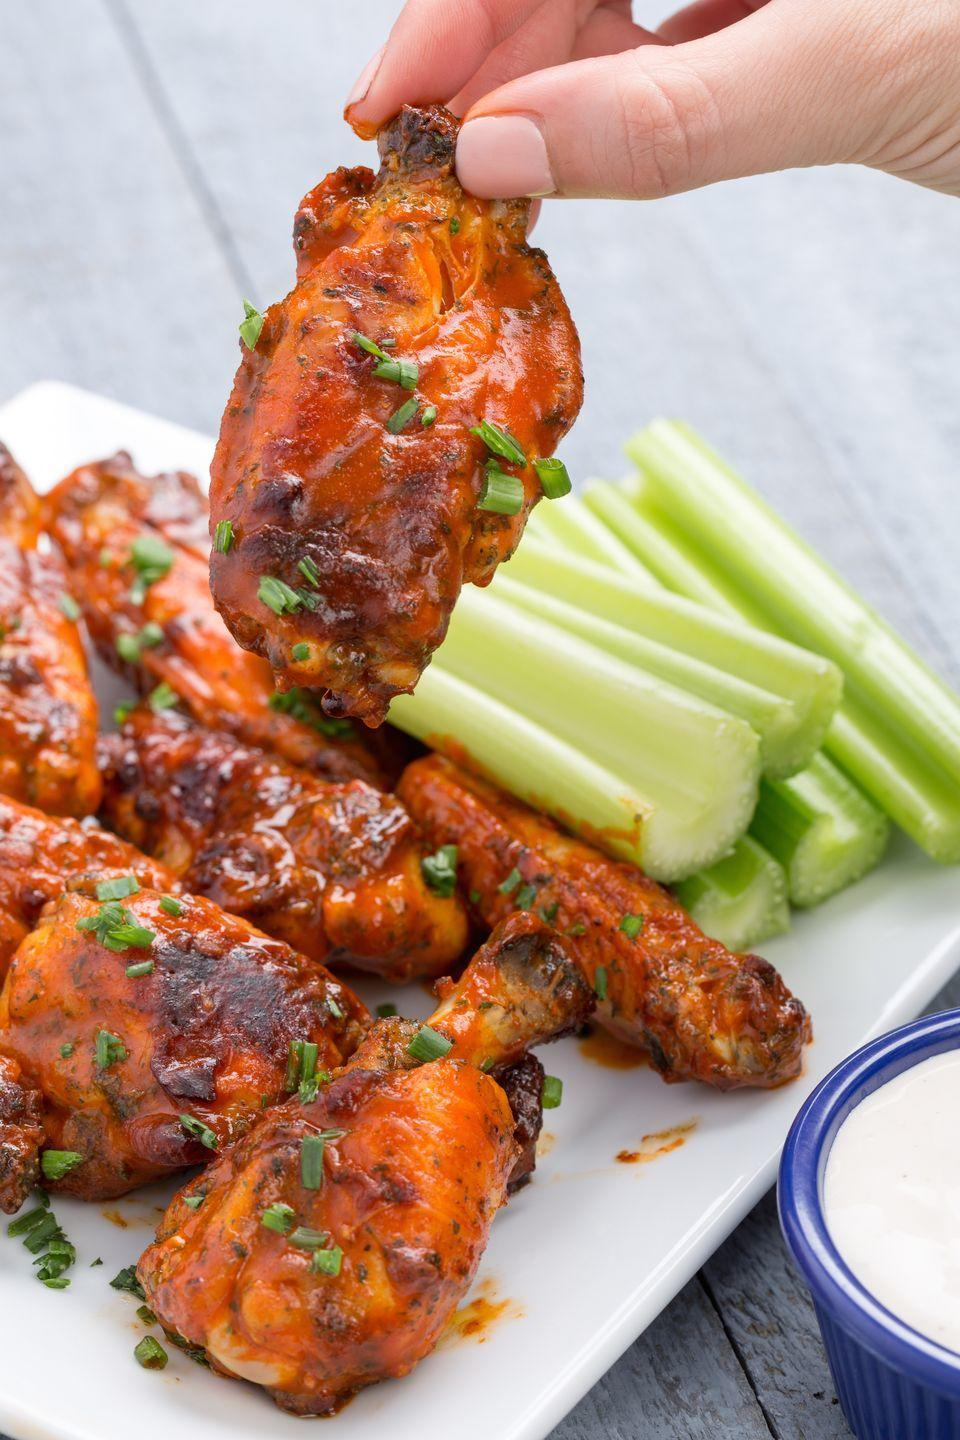 """<p>Any true football fan knows that Game Day isn't complete without buffalo ranch <em>something</em>. Put on your favorite jersey, bust out the Frank's Red Hot, and get ready to go buffalo or go home.</p><p>Get the recipe from <a href=""""https://www.redbookmag.com/cooking/recipe-ideas/recipes/a44367/slow-cooker-buffalo-ranch-wings-recipe/"""" rel=""""nofollow noopener"""" target=""""_blank"""" data-ylk=""""slk:Delish"""" class=""""link rapid-noclick-resp"""">Delish</a>. </p>"""